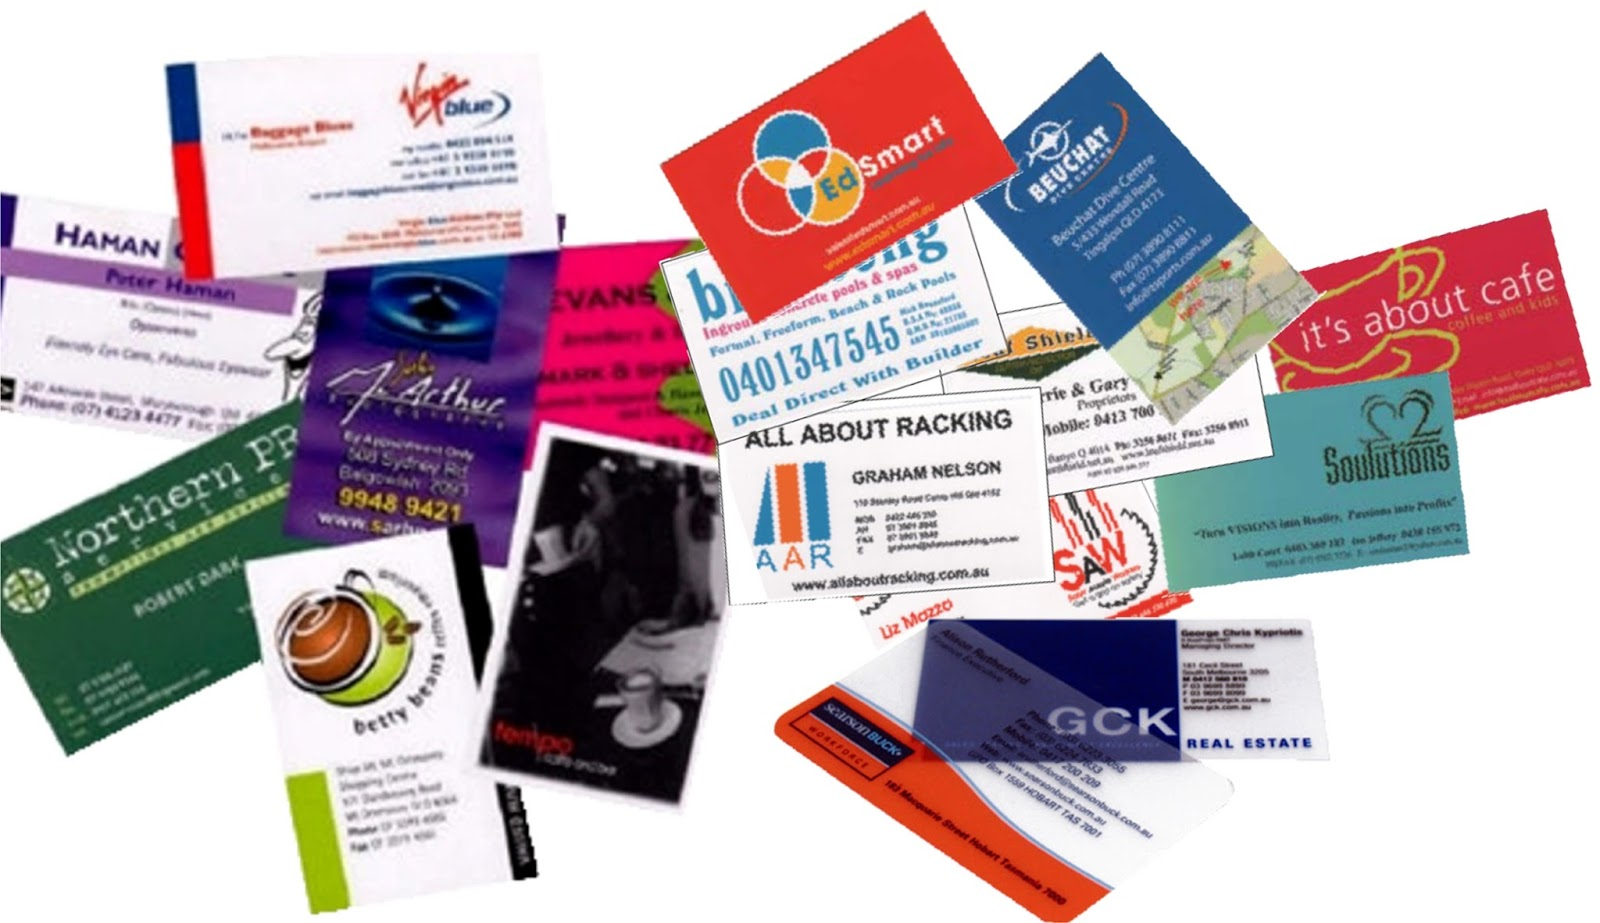 Luxury business cards printing gloucester leaflet distribution in business cards are a great way piece to give out at networking events corporate meetings or even to leave your details for potential clients in the future reheart Choice Image